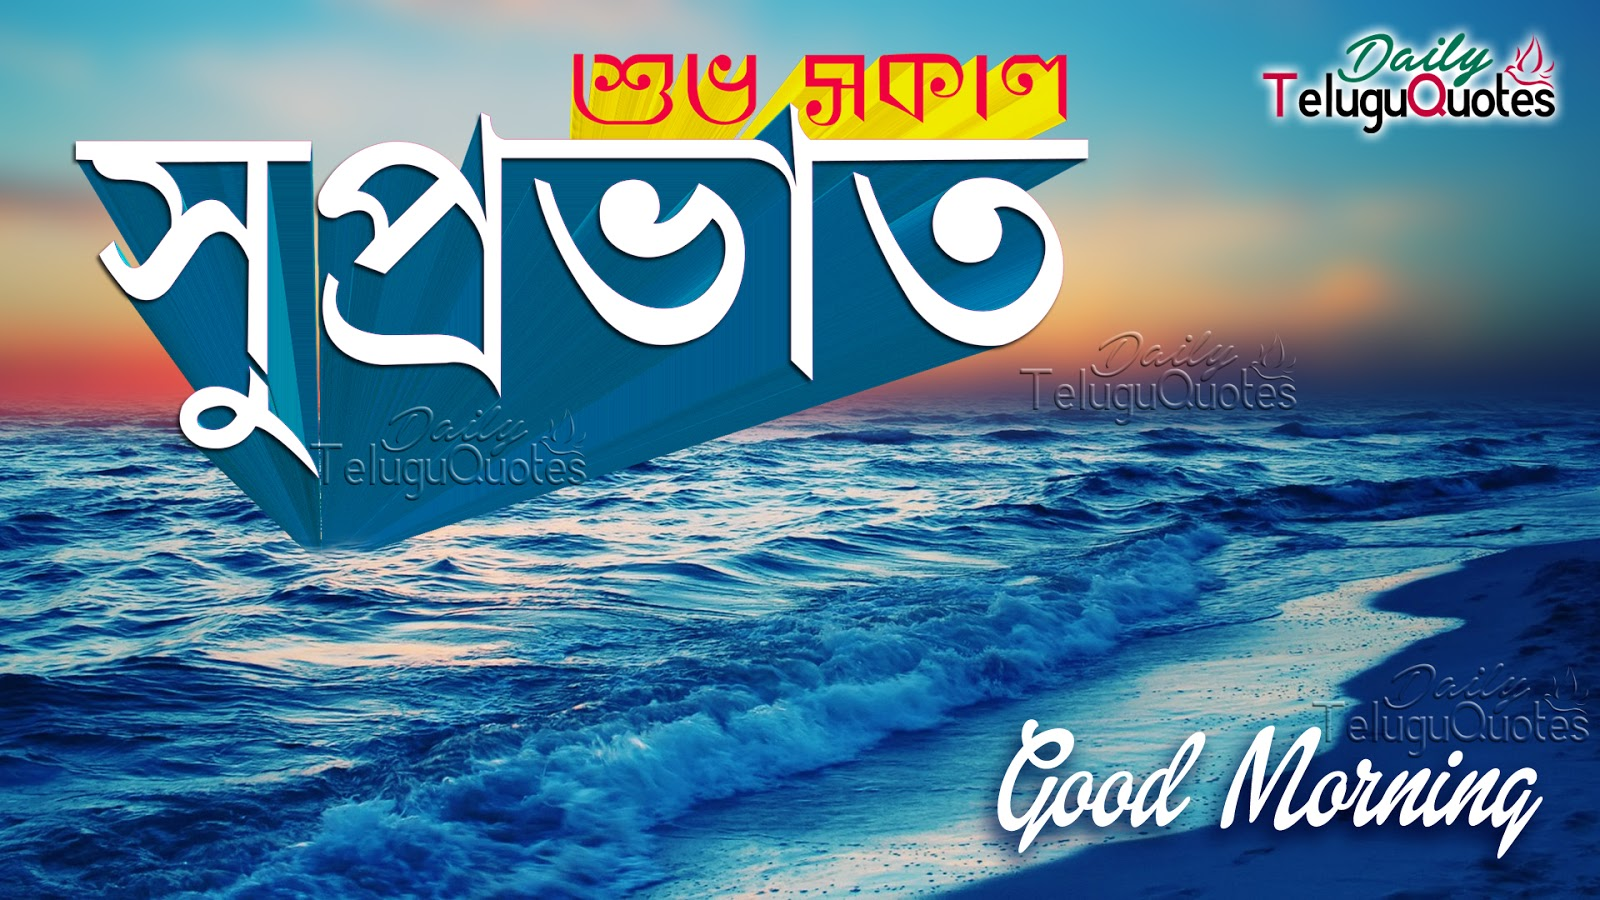 Good Morning Image Shayari Bengali Bangla Good Morning Sms